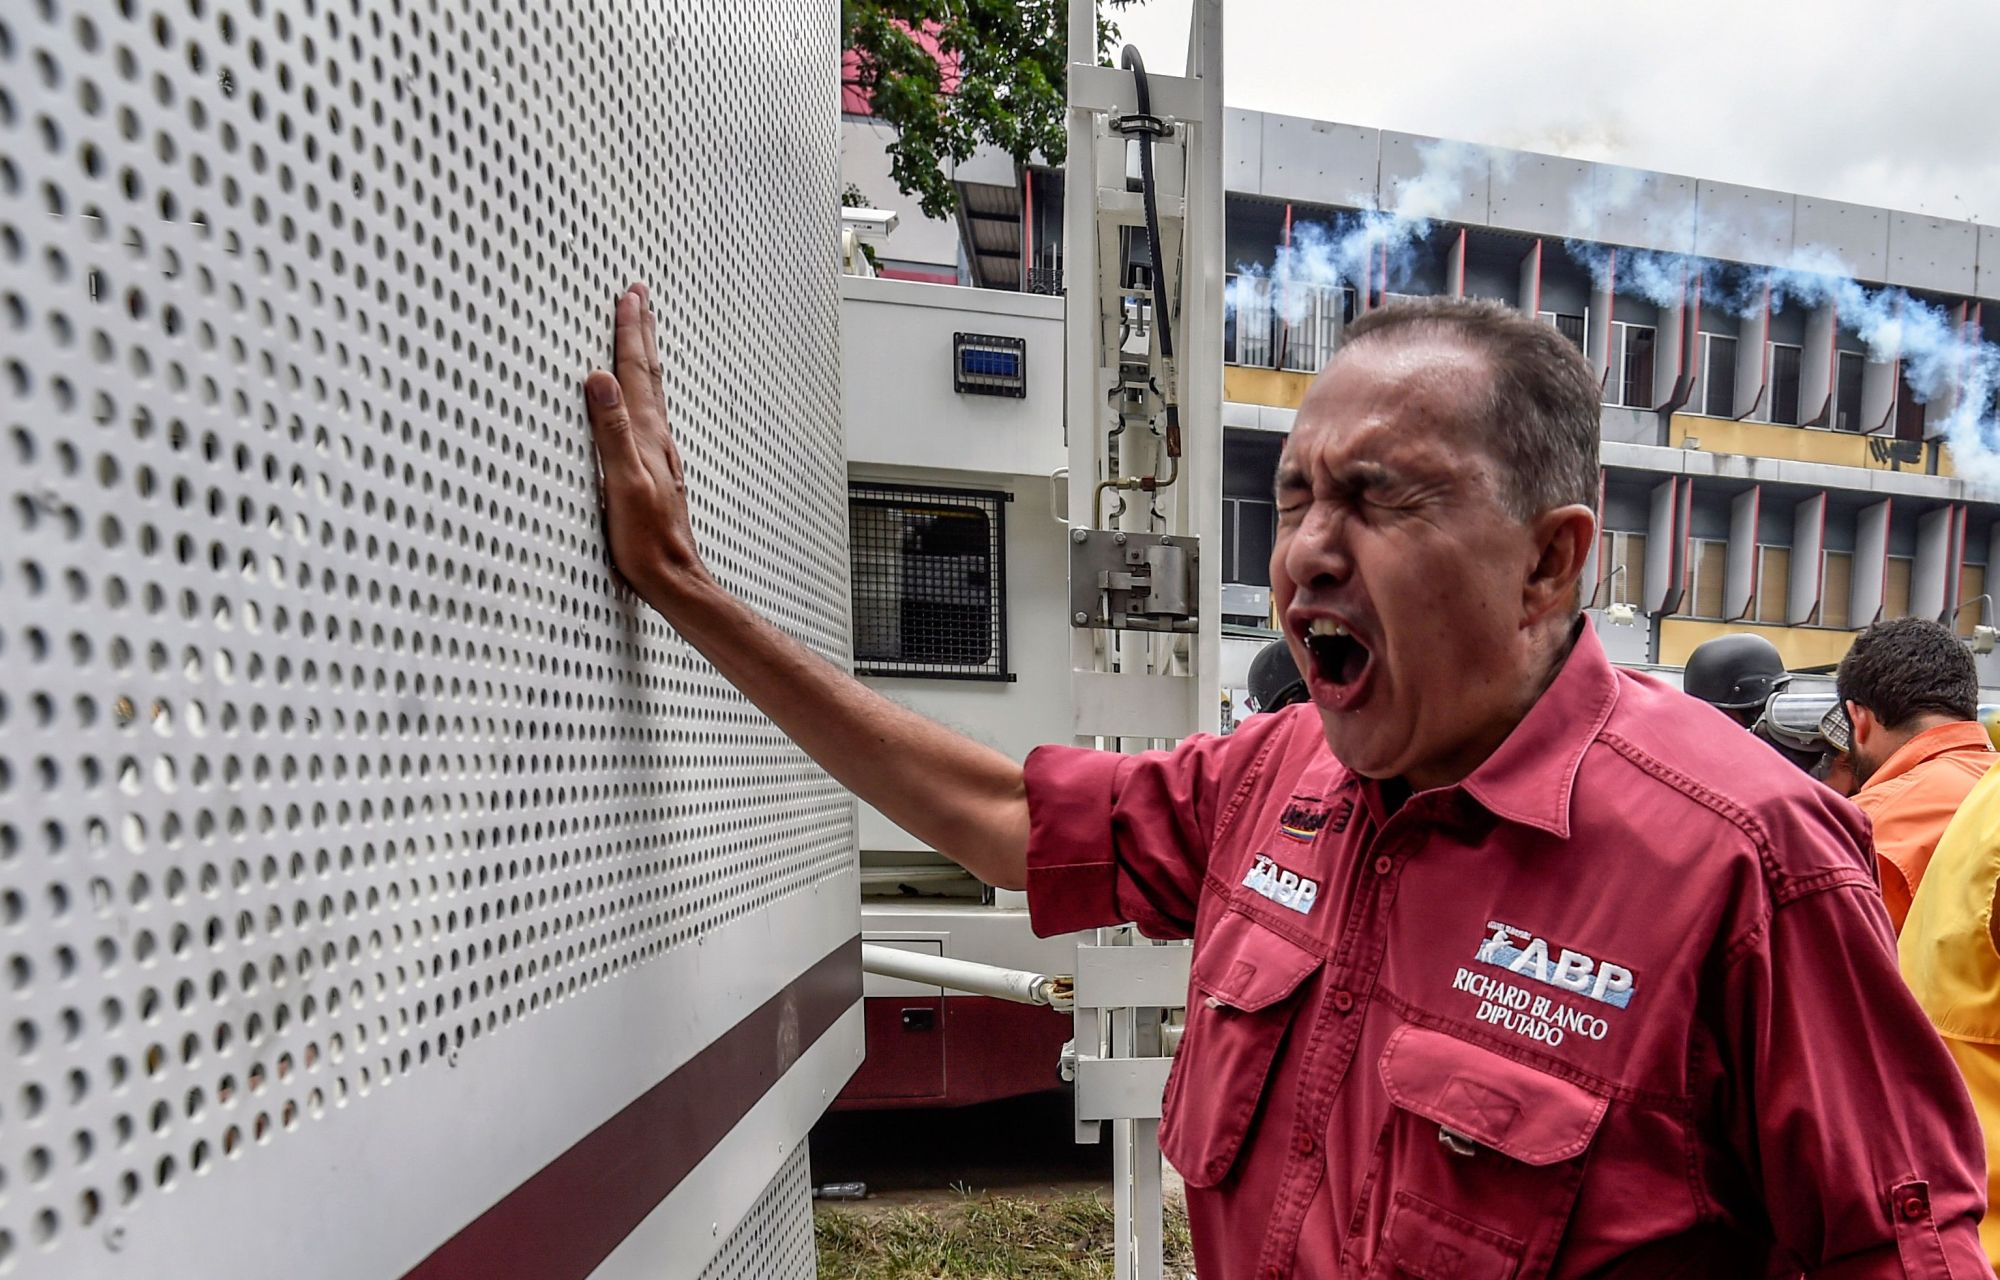 Venezuelan opposition deputy Richard Blanco confronts a national guard's truck during a protest over President Nicolas Maduro's government in Caracas in 2017. Blanco, one of 10 Venezuelan legislators accused of supporting a military uprising against Venezuelan President Nicolas Maduro, took refuge in the Argentine ambassador's residence in Caracas to prevent his detention, he announced on Thursday. | AFP-JIJI